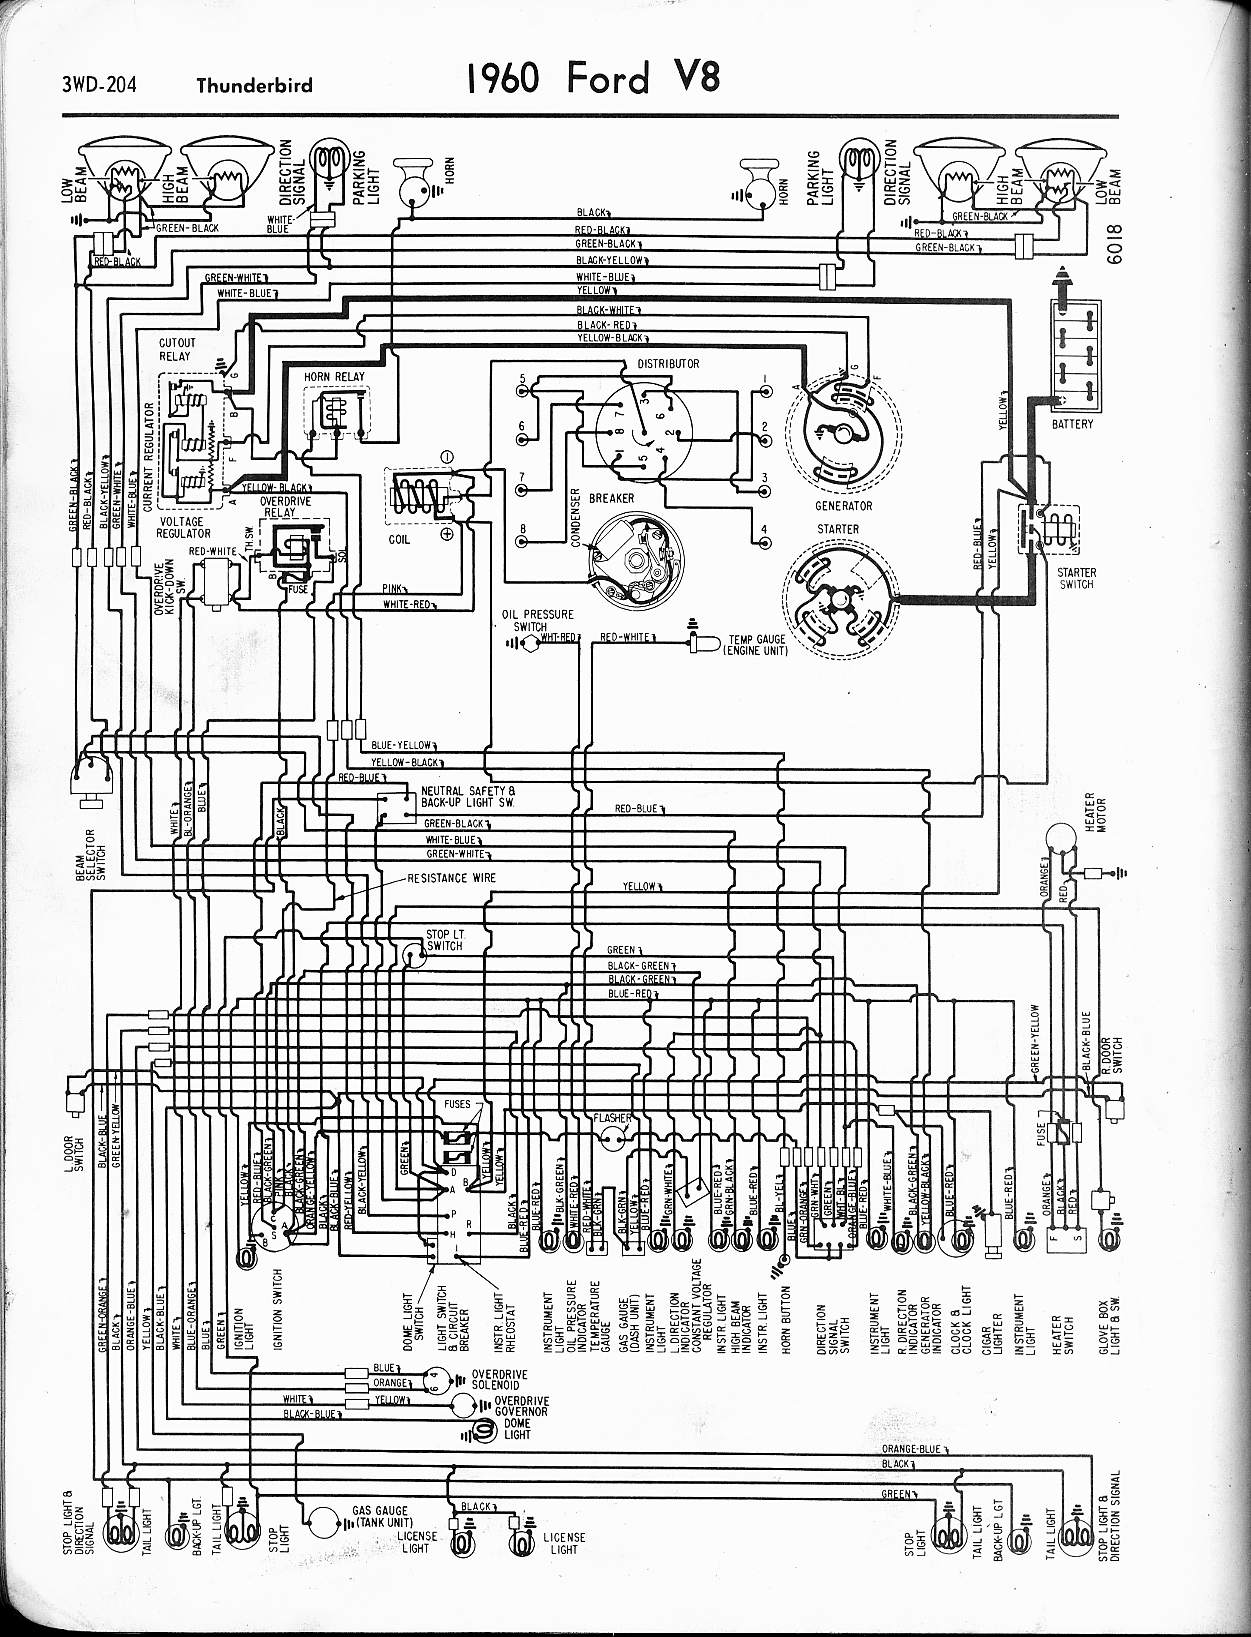 1960 Ford Wiring Diagram Wiring Diagram Schemes Ford Stereo Wiring 1960  Ford Radio Wiring